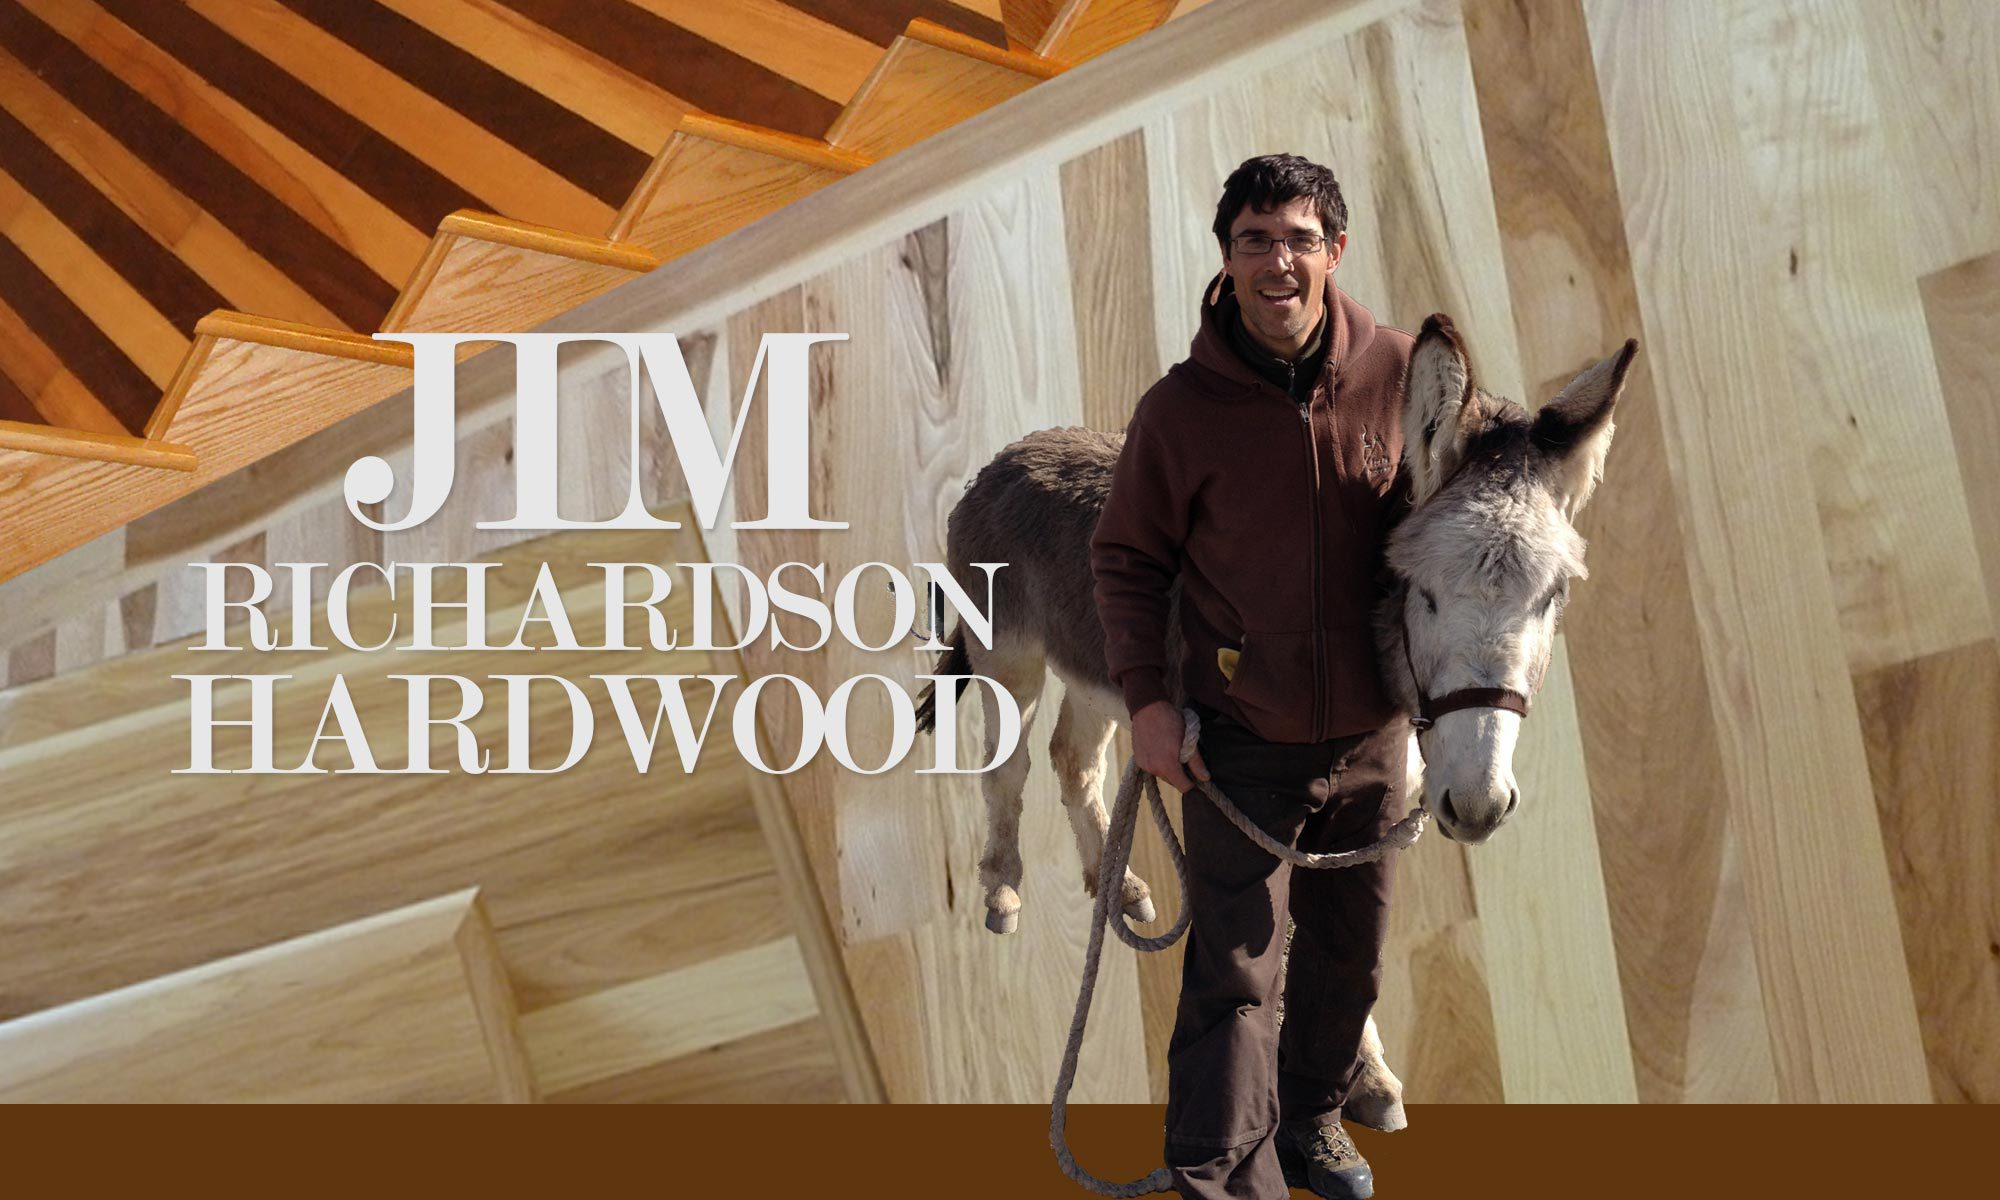 Jim Richardson Hardwood